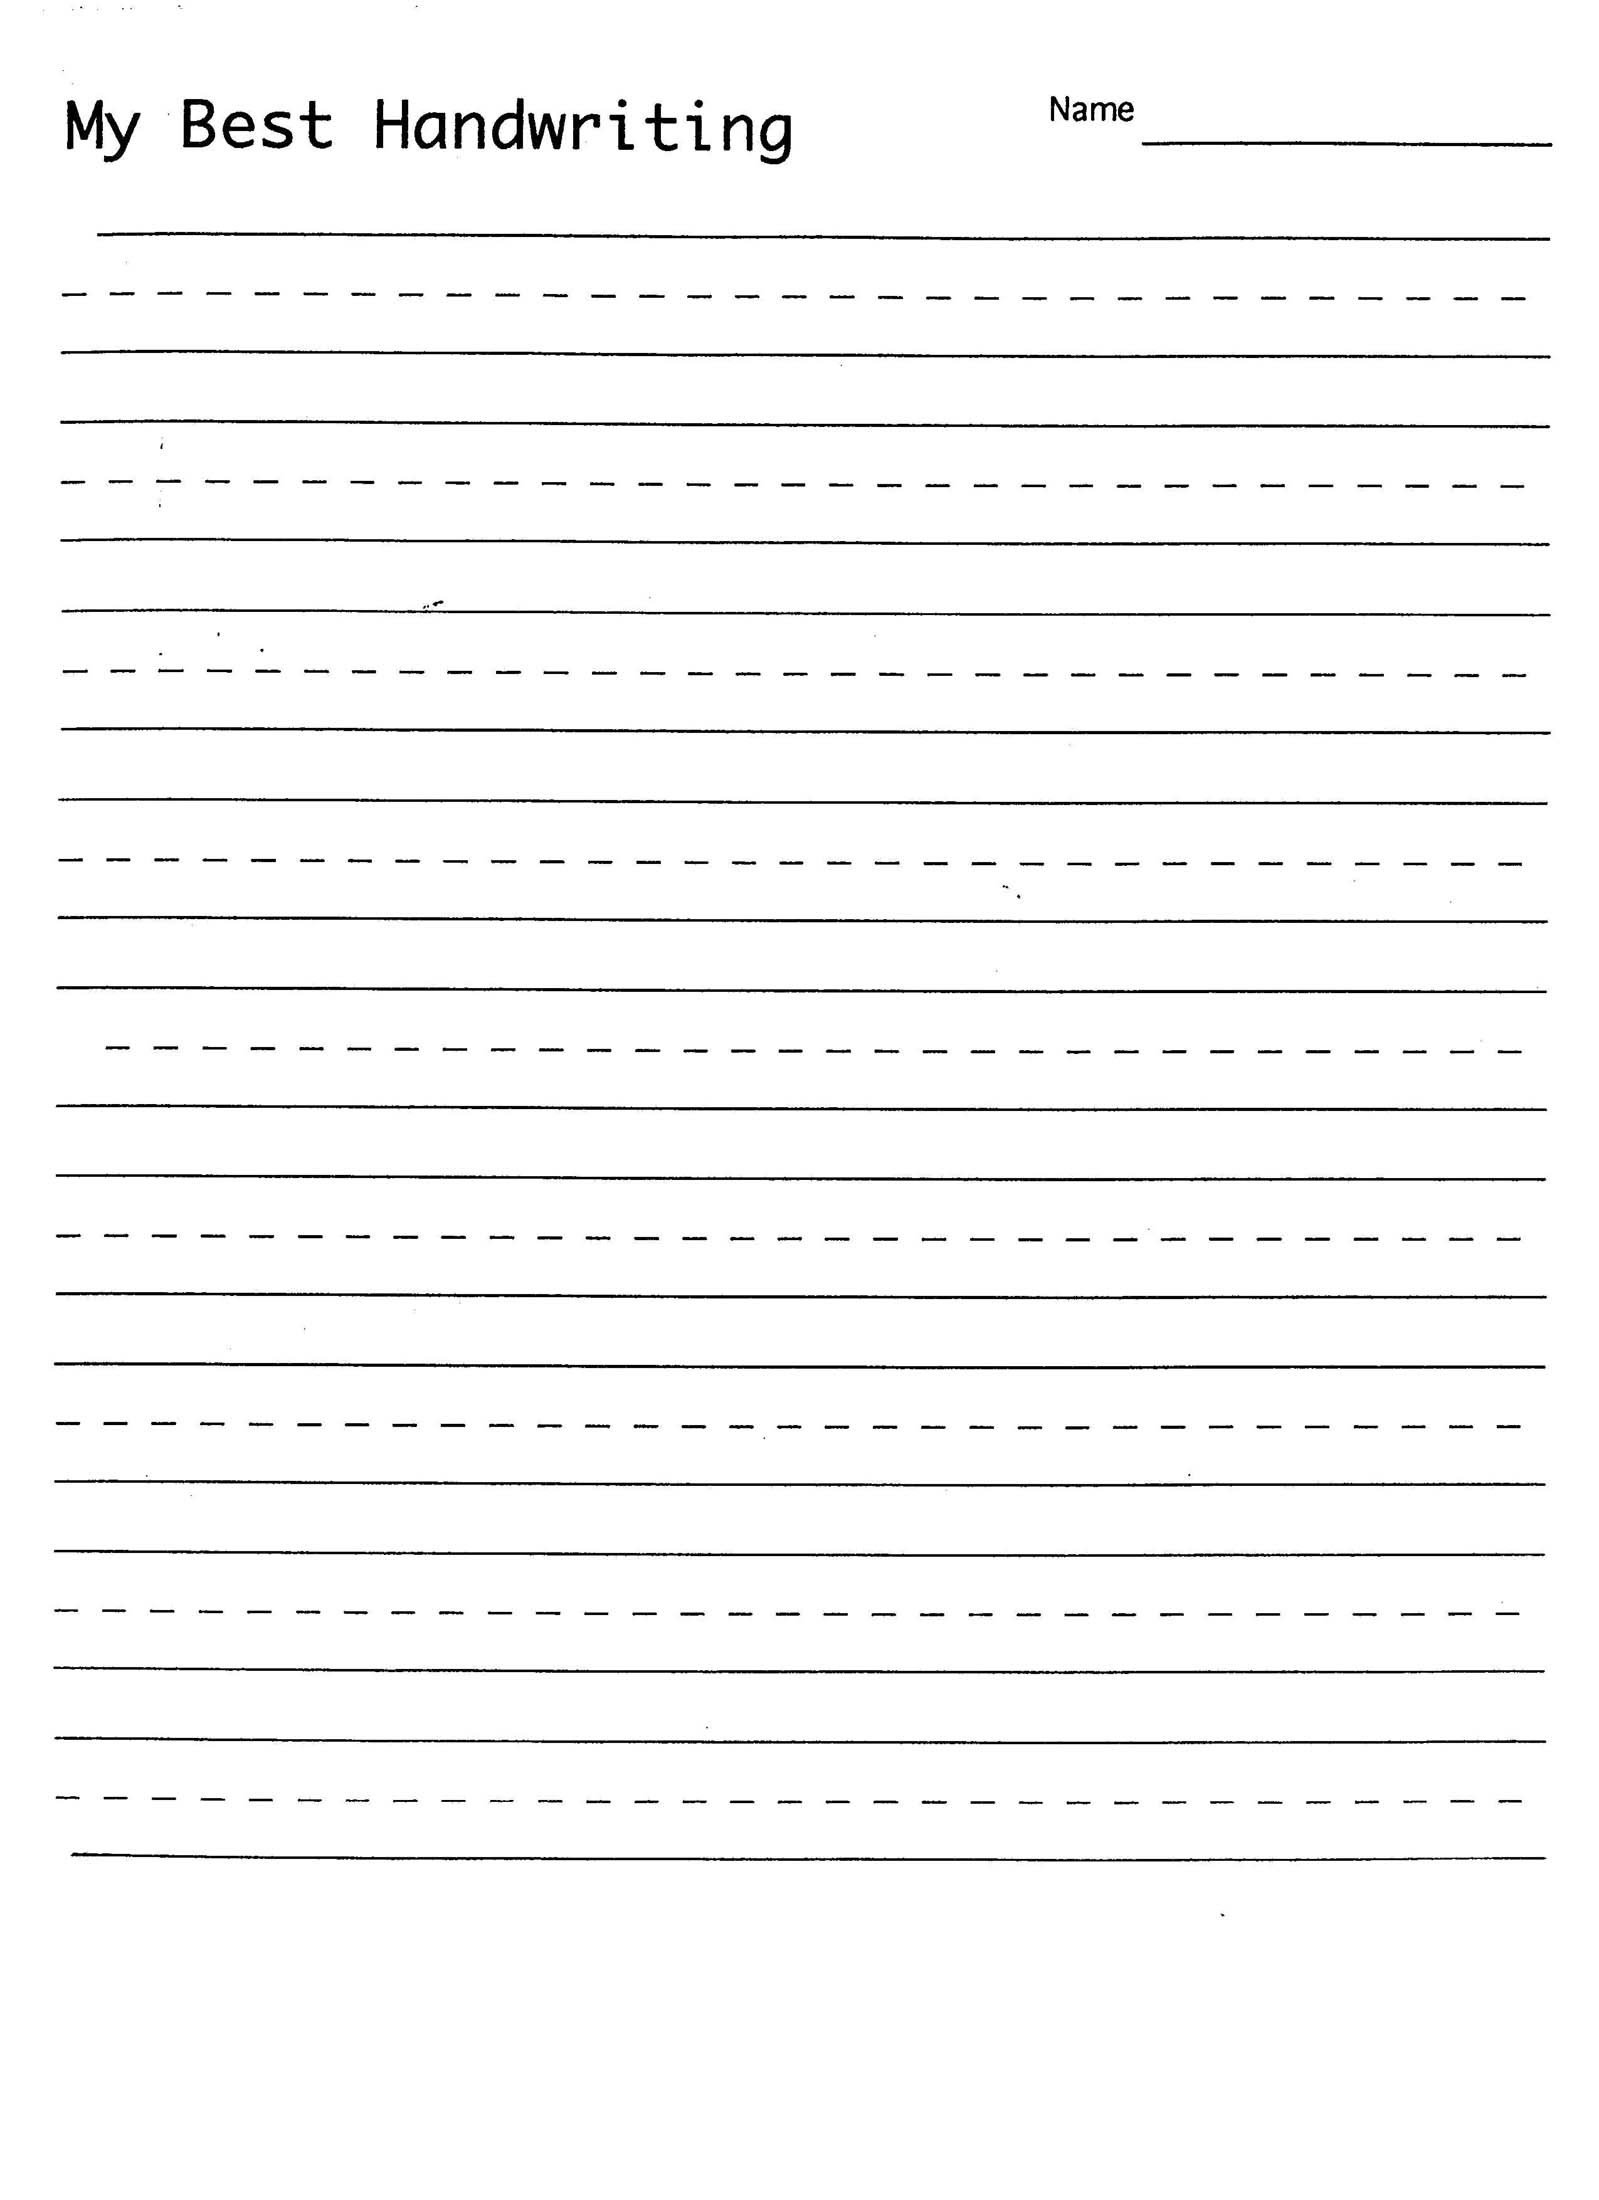 practice writing worksheets handwriting sheets printable cursive pdf free nelson alphabet for